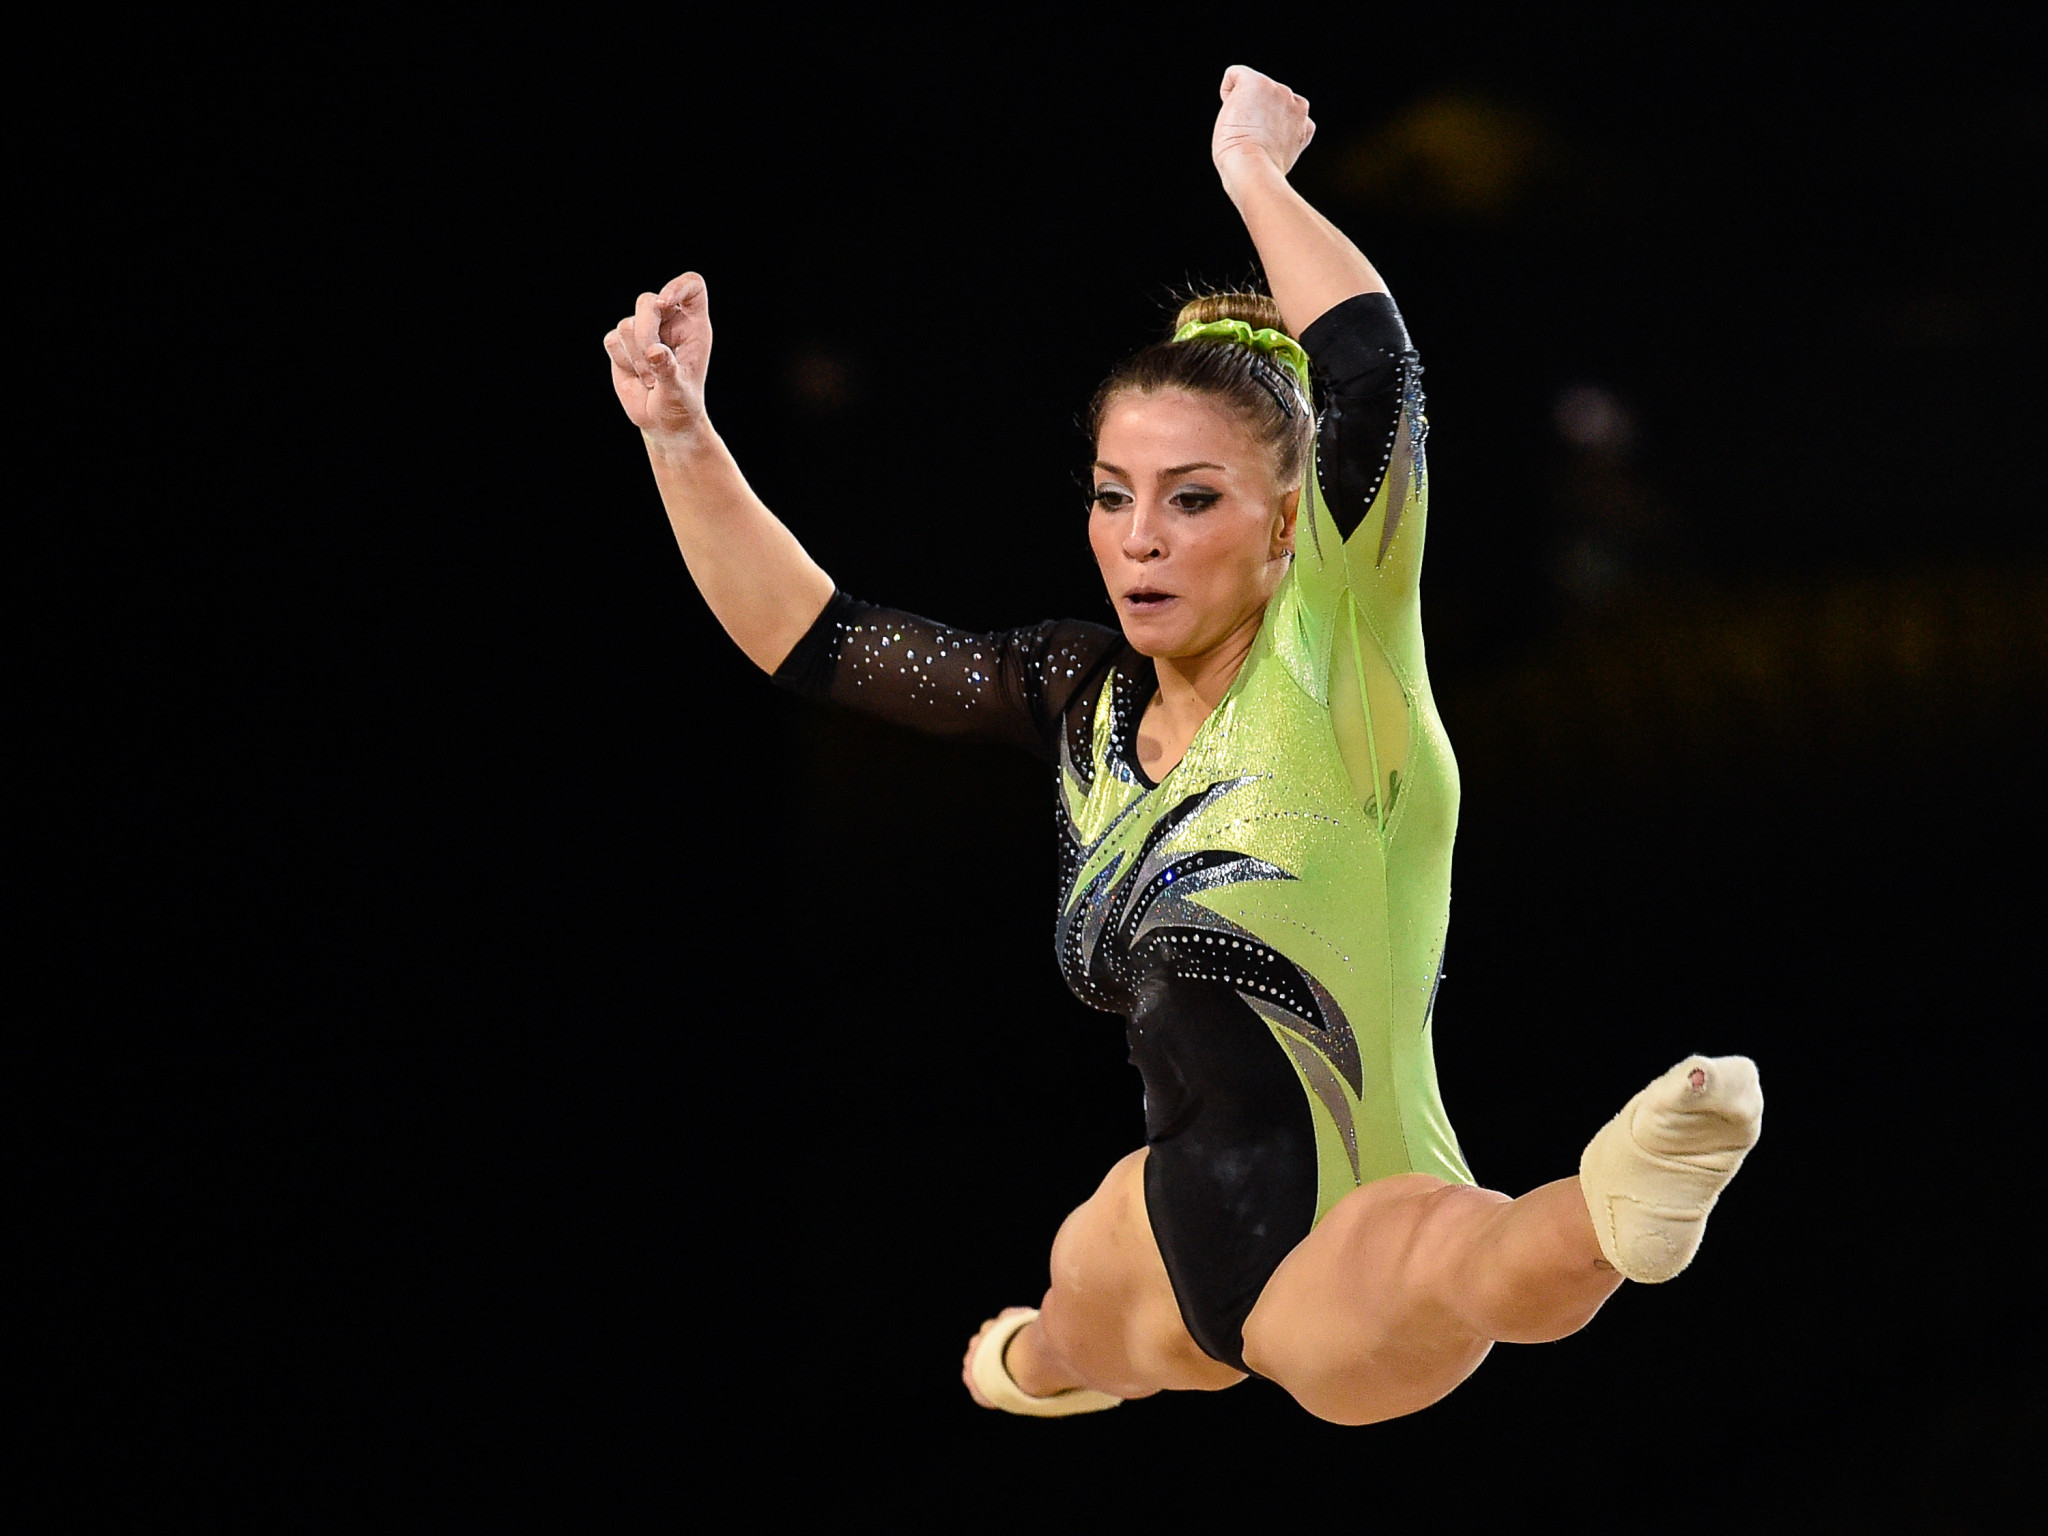 Italy's Lara Mori topped women's floor qualifying at the FIG Individual Apparatus World Cup in Baku ©Getty Images